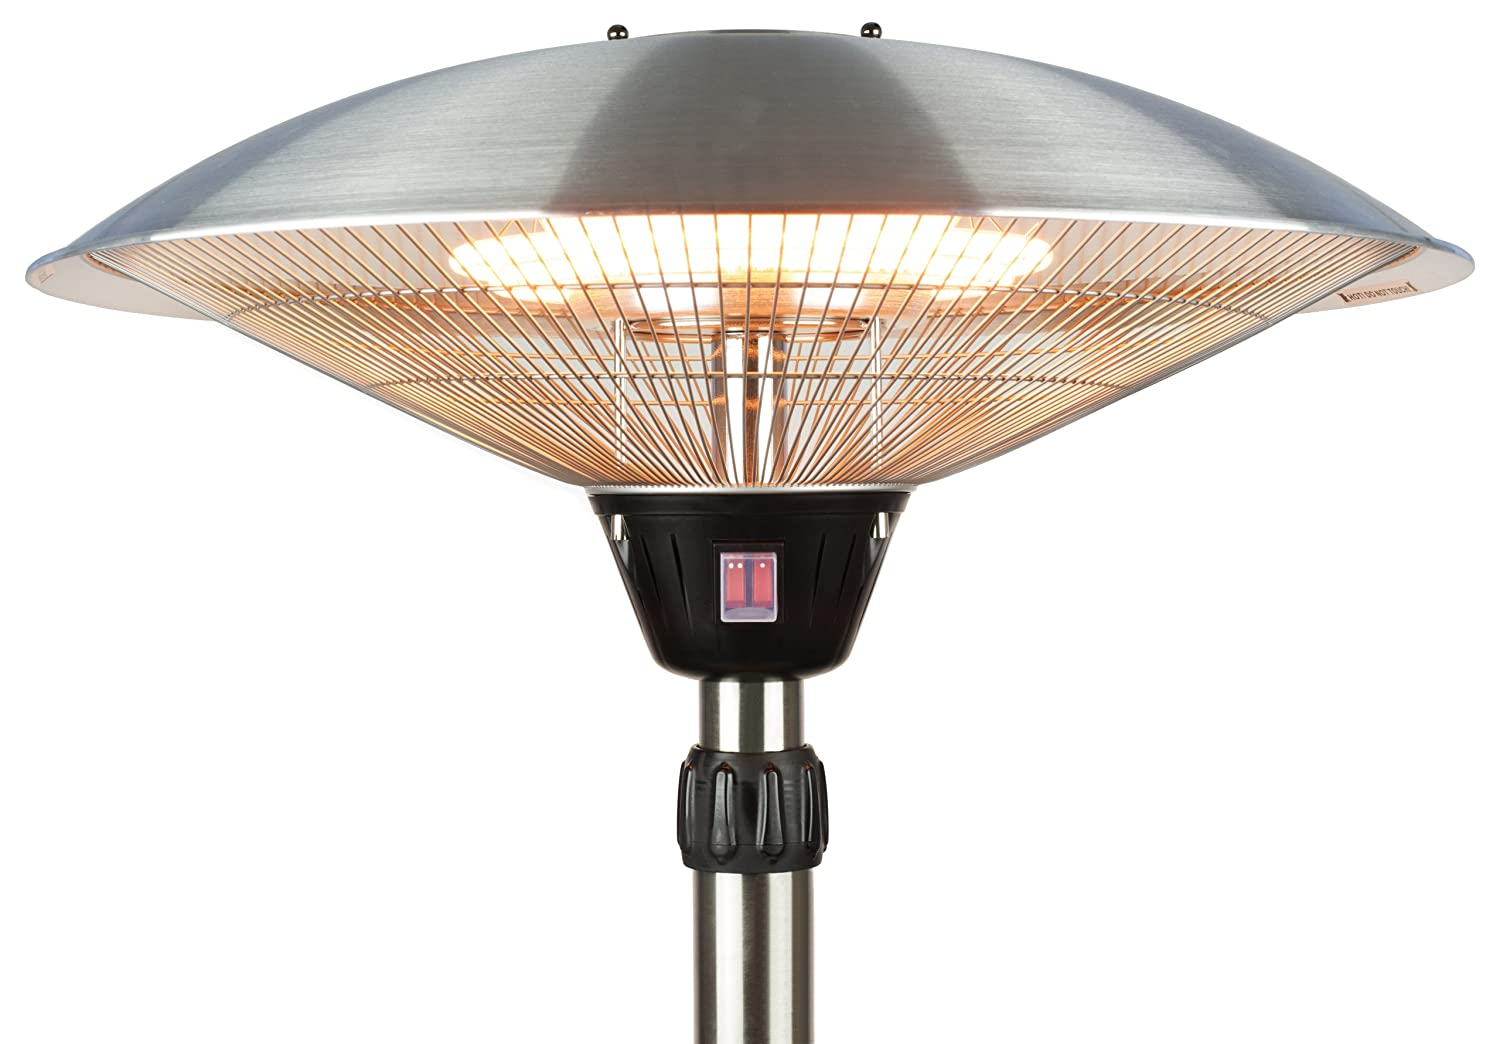 Andrew James Outdoor Patio Heater With 2100W Electric Halogen Element And  Floating Table: Amazon.co.uk: Garden U0026 Outdoors